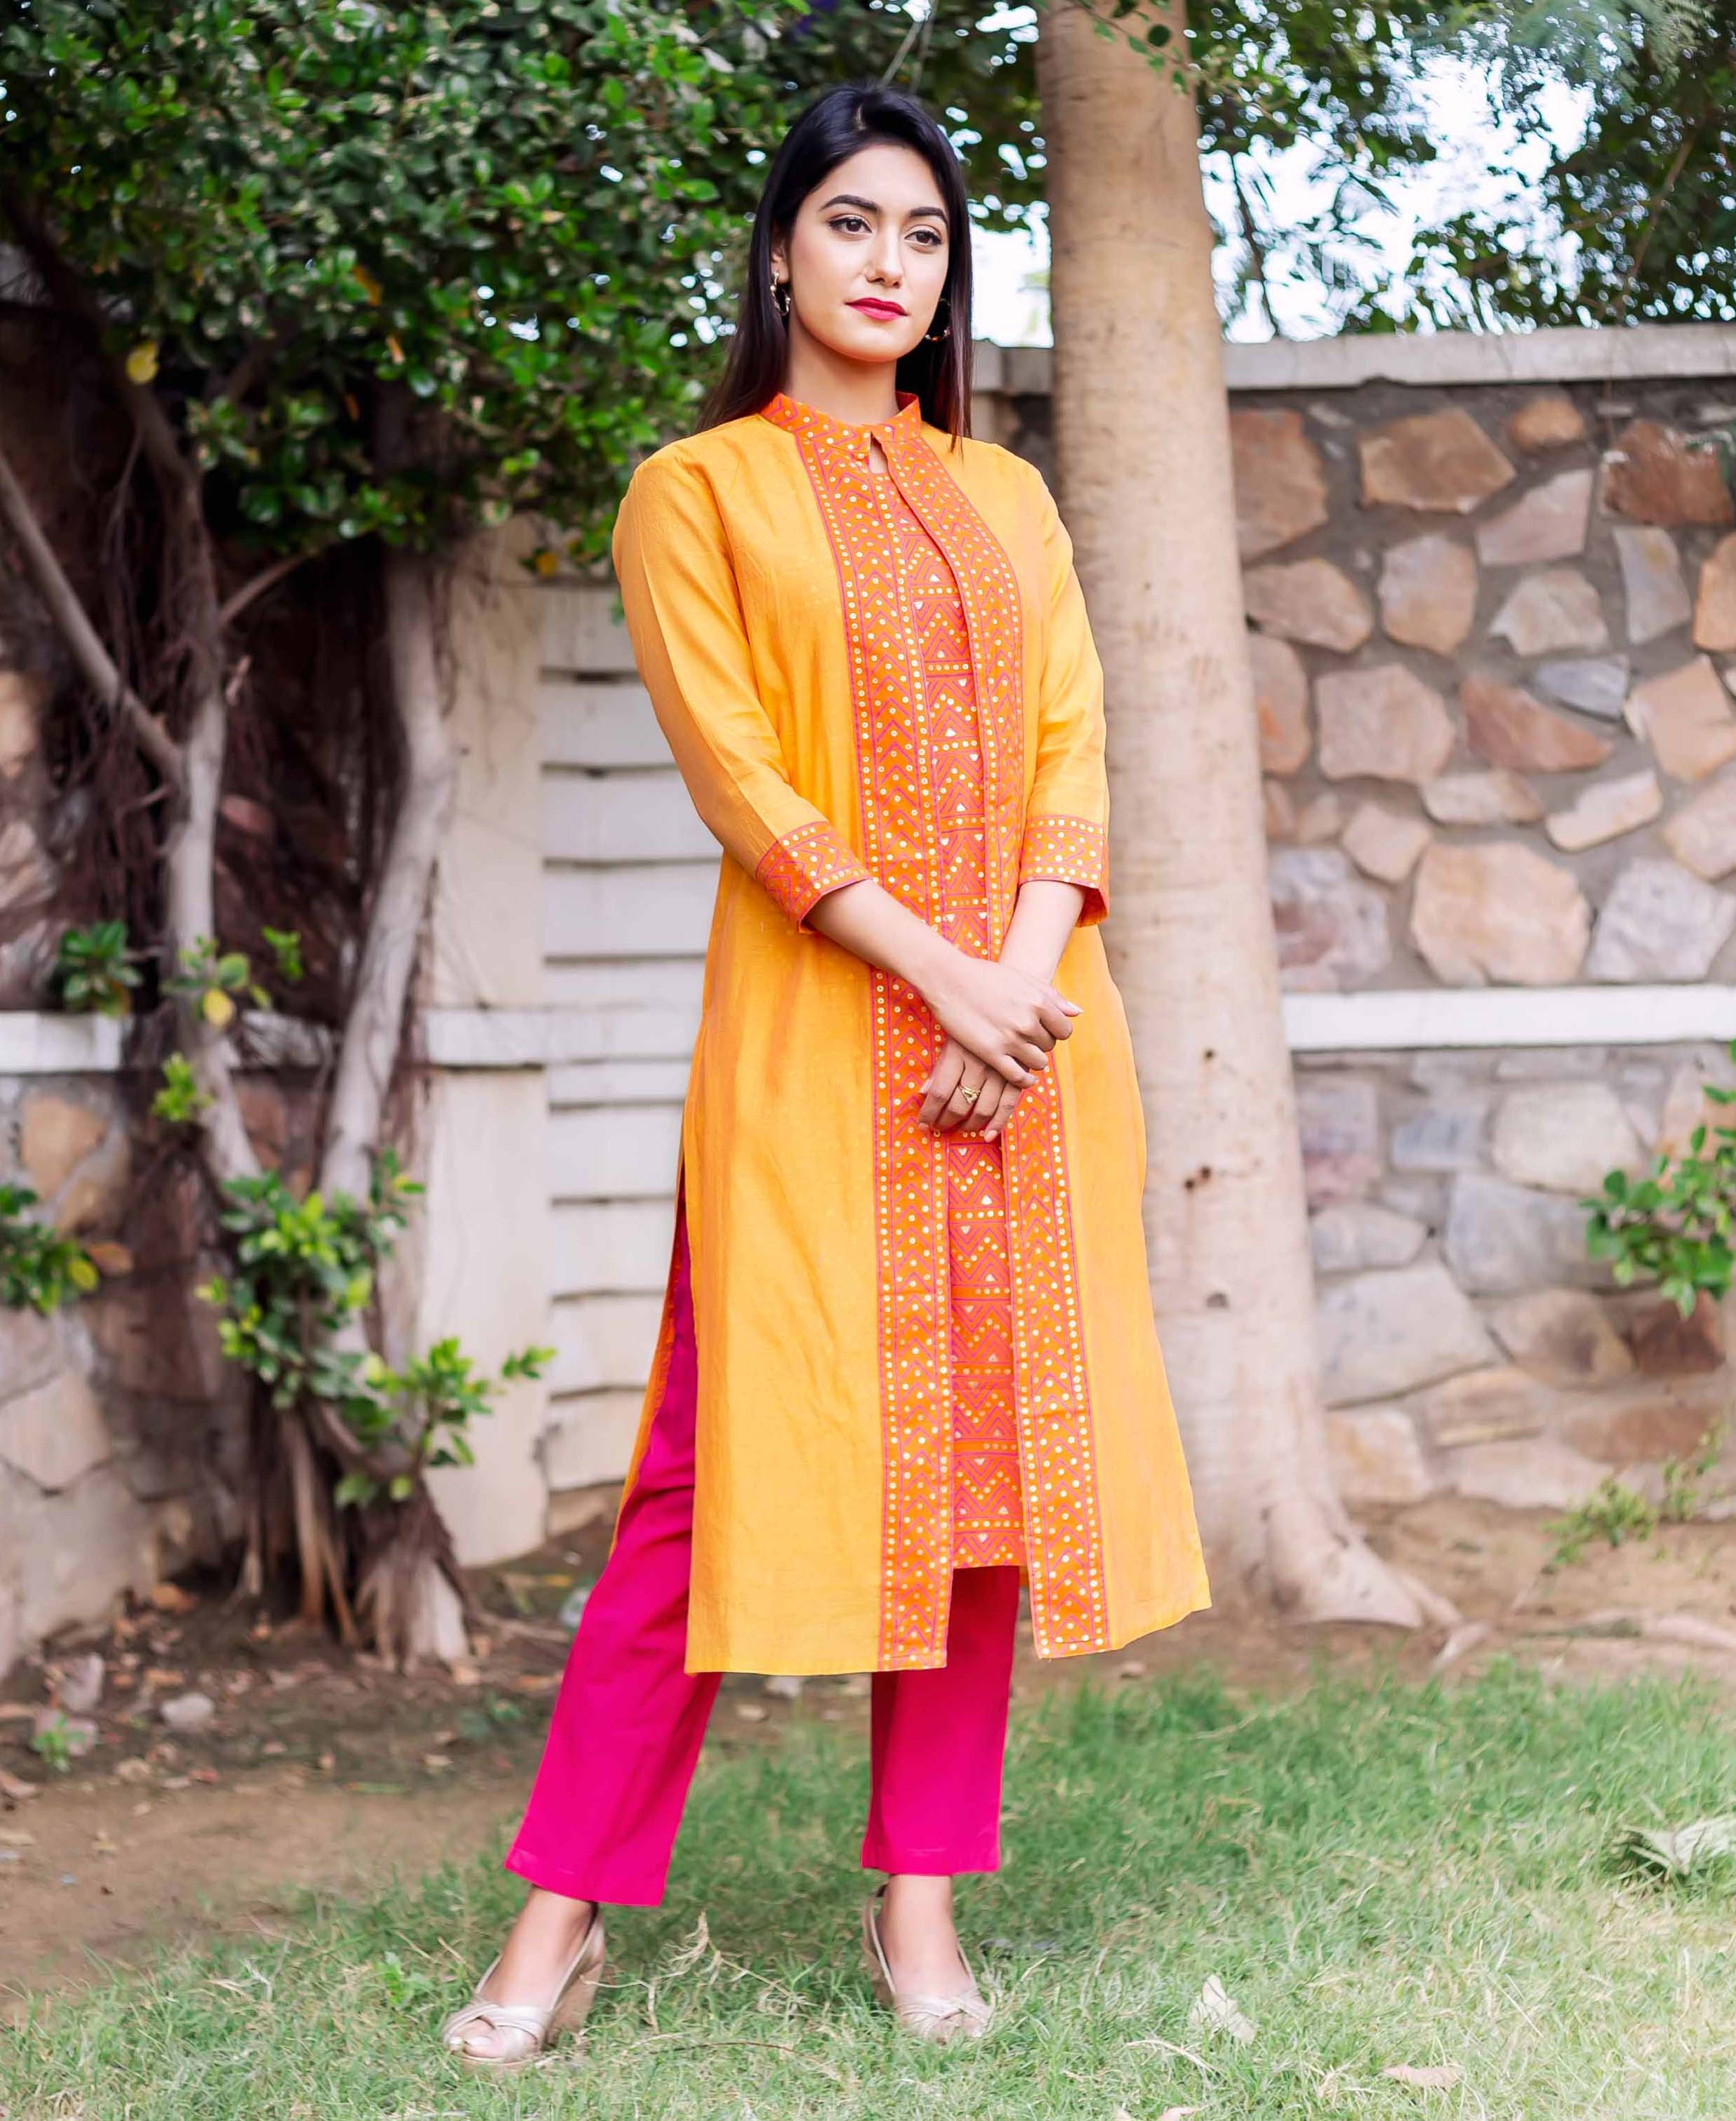 ace0924d8 Mustard Double Layered Block Printed Kurta with Attached Jacket ...